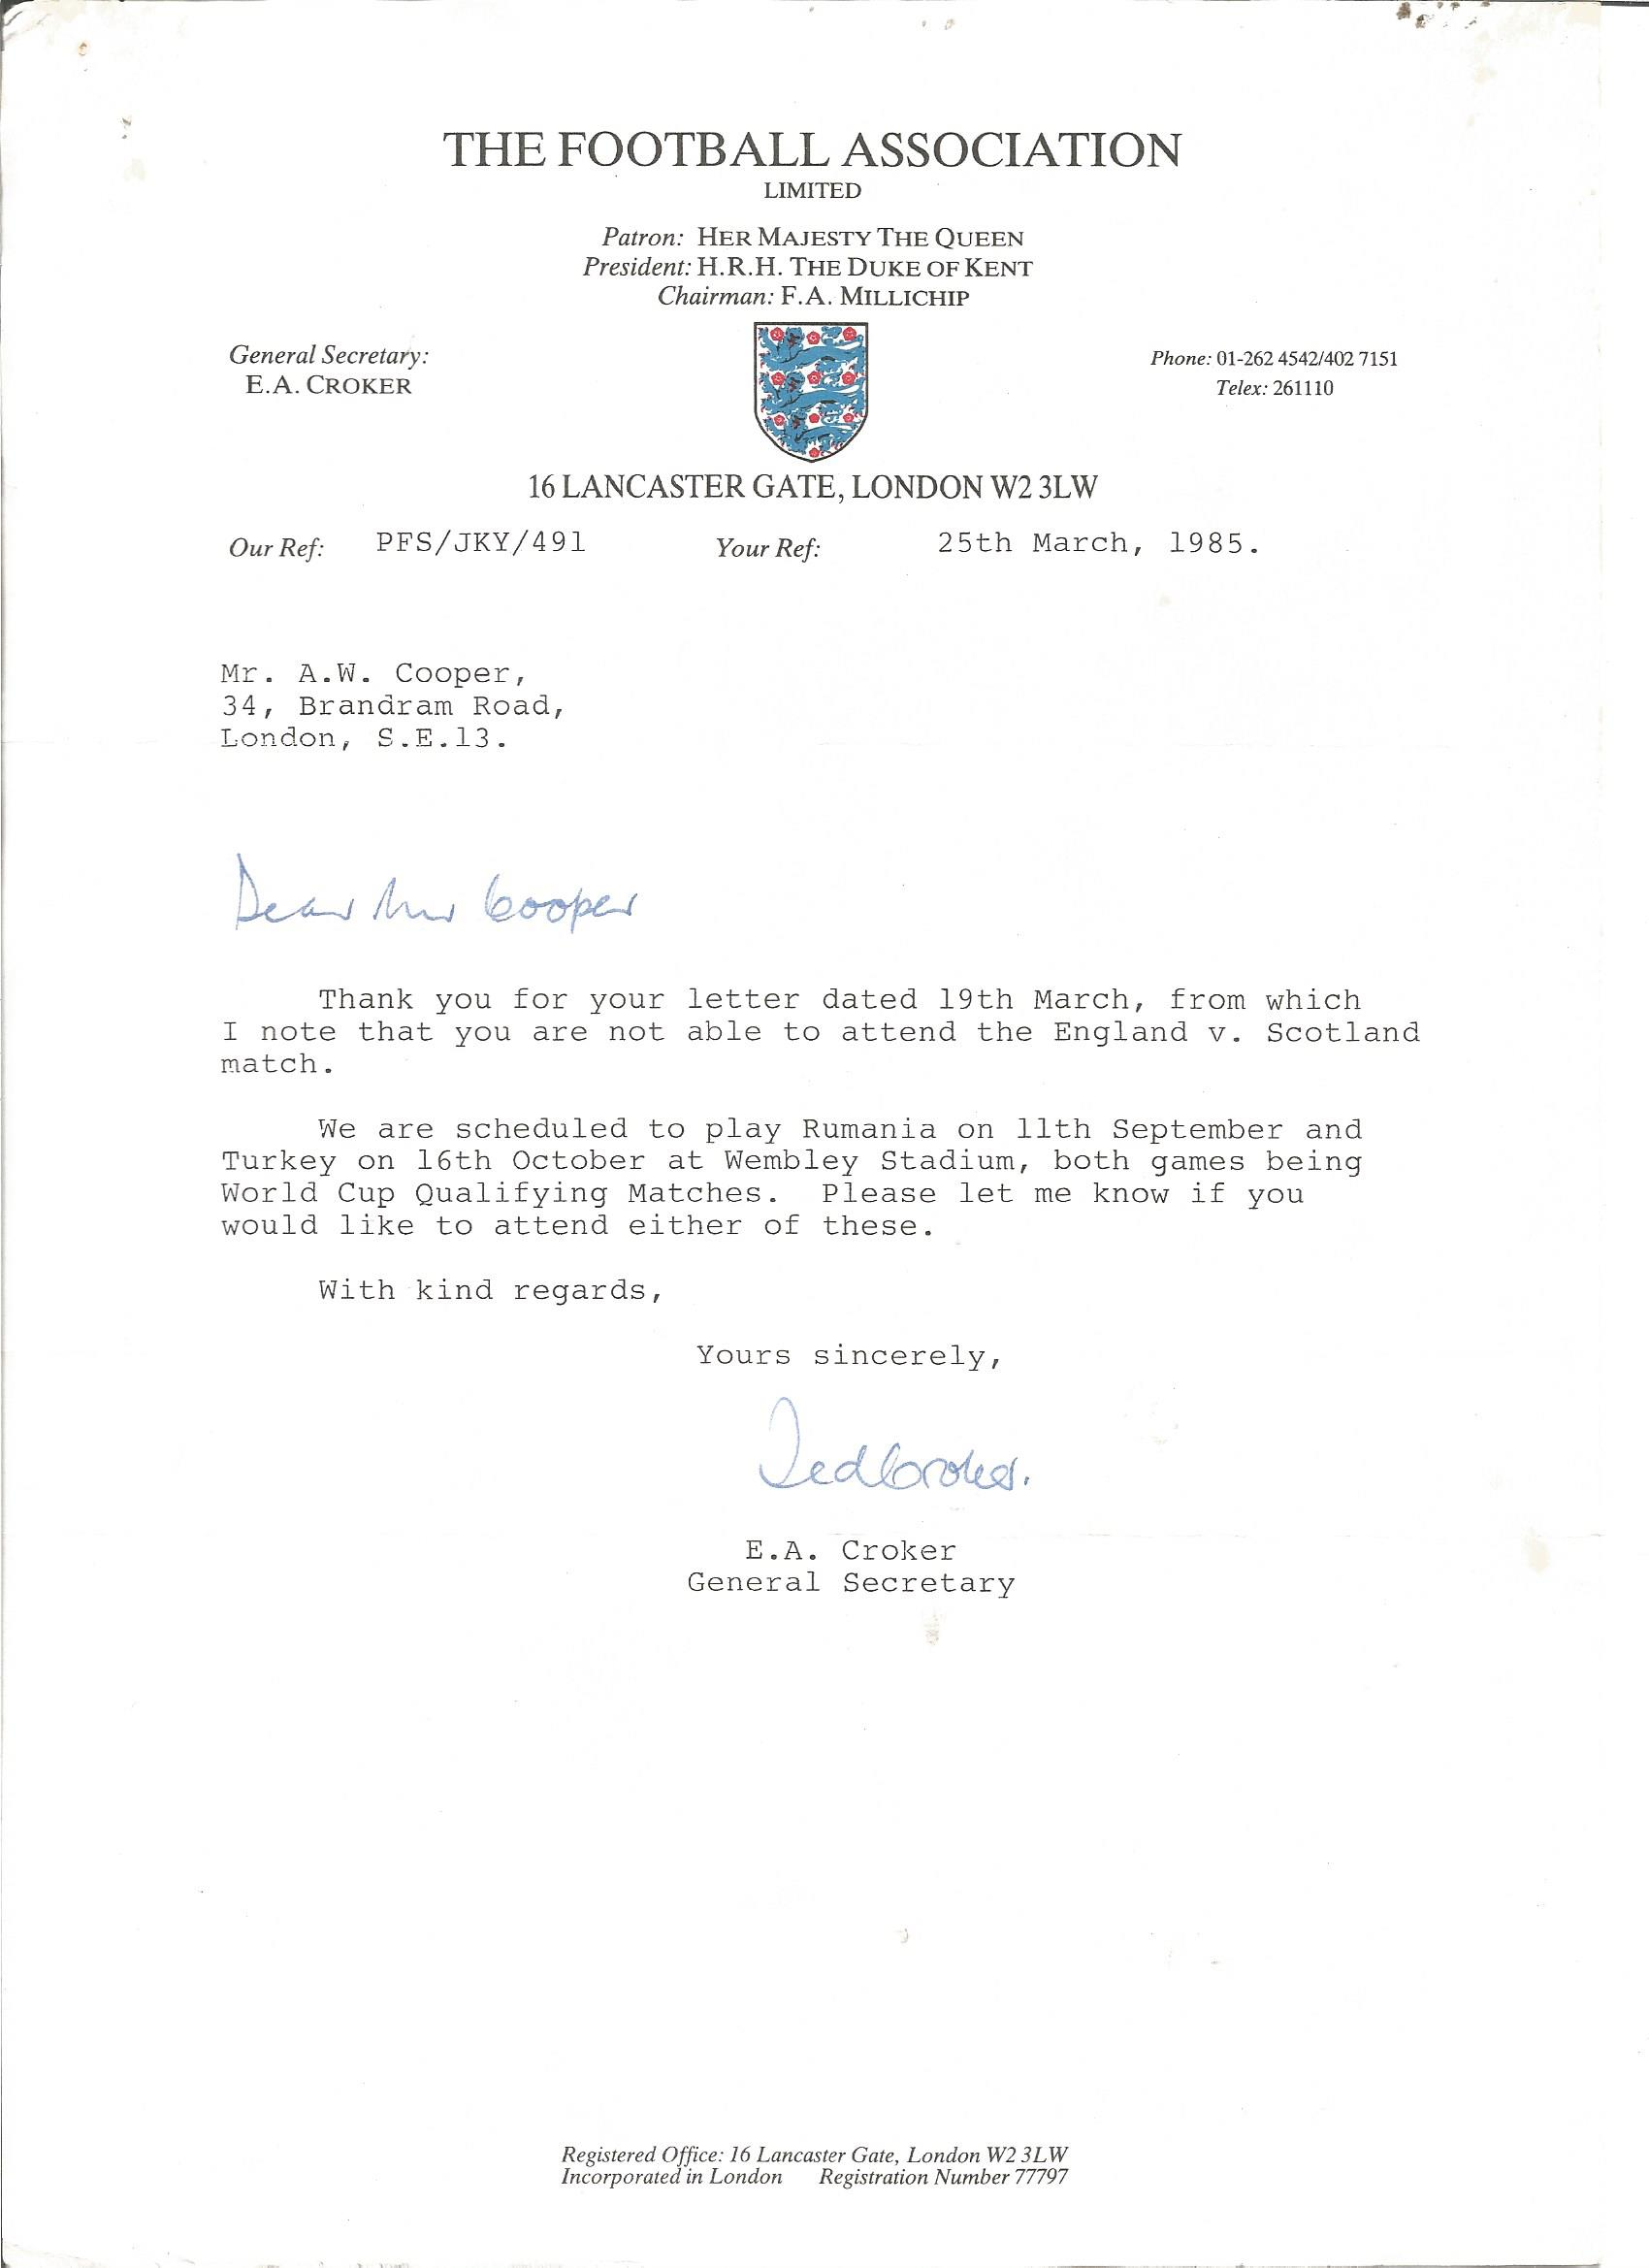 Lot 54 - Ted Croker typed signed letter to WW2 author Alan Cooper on Football Association letterhead 1985.